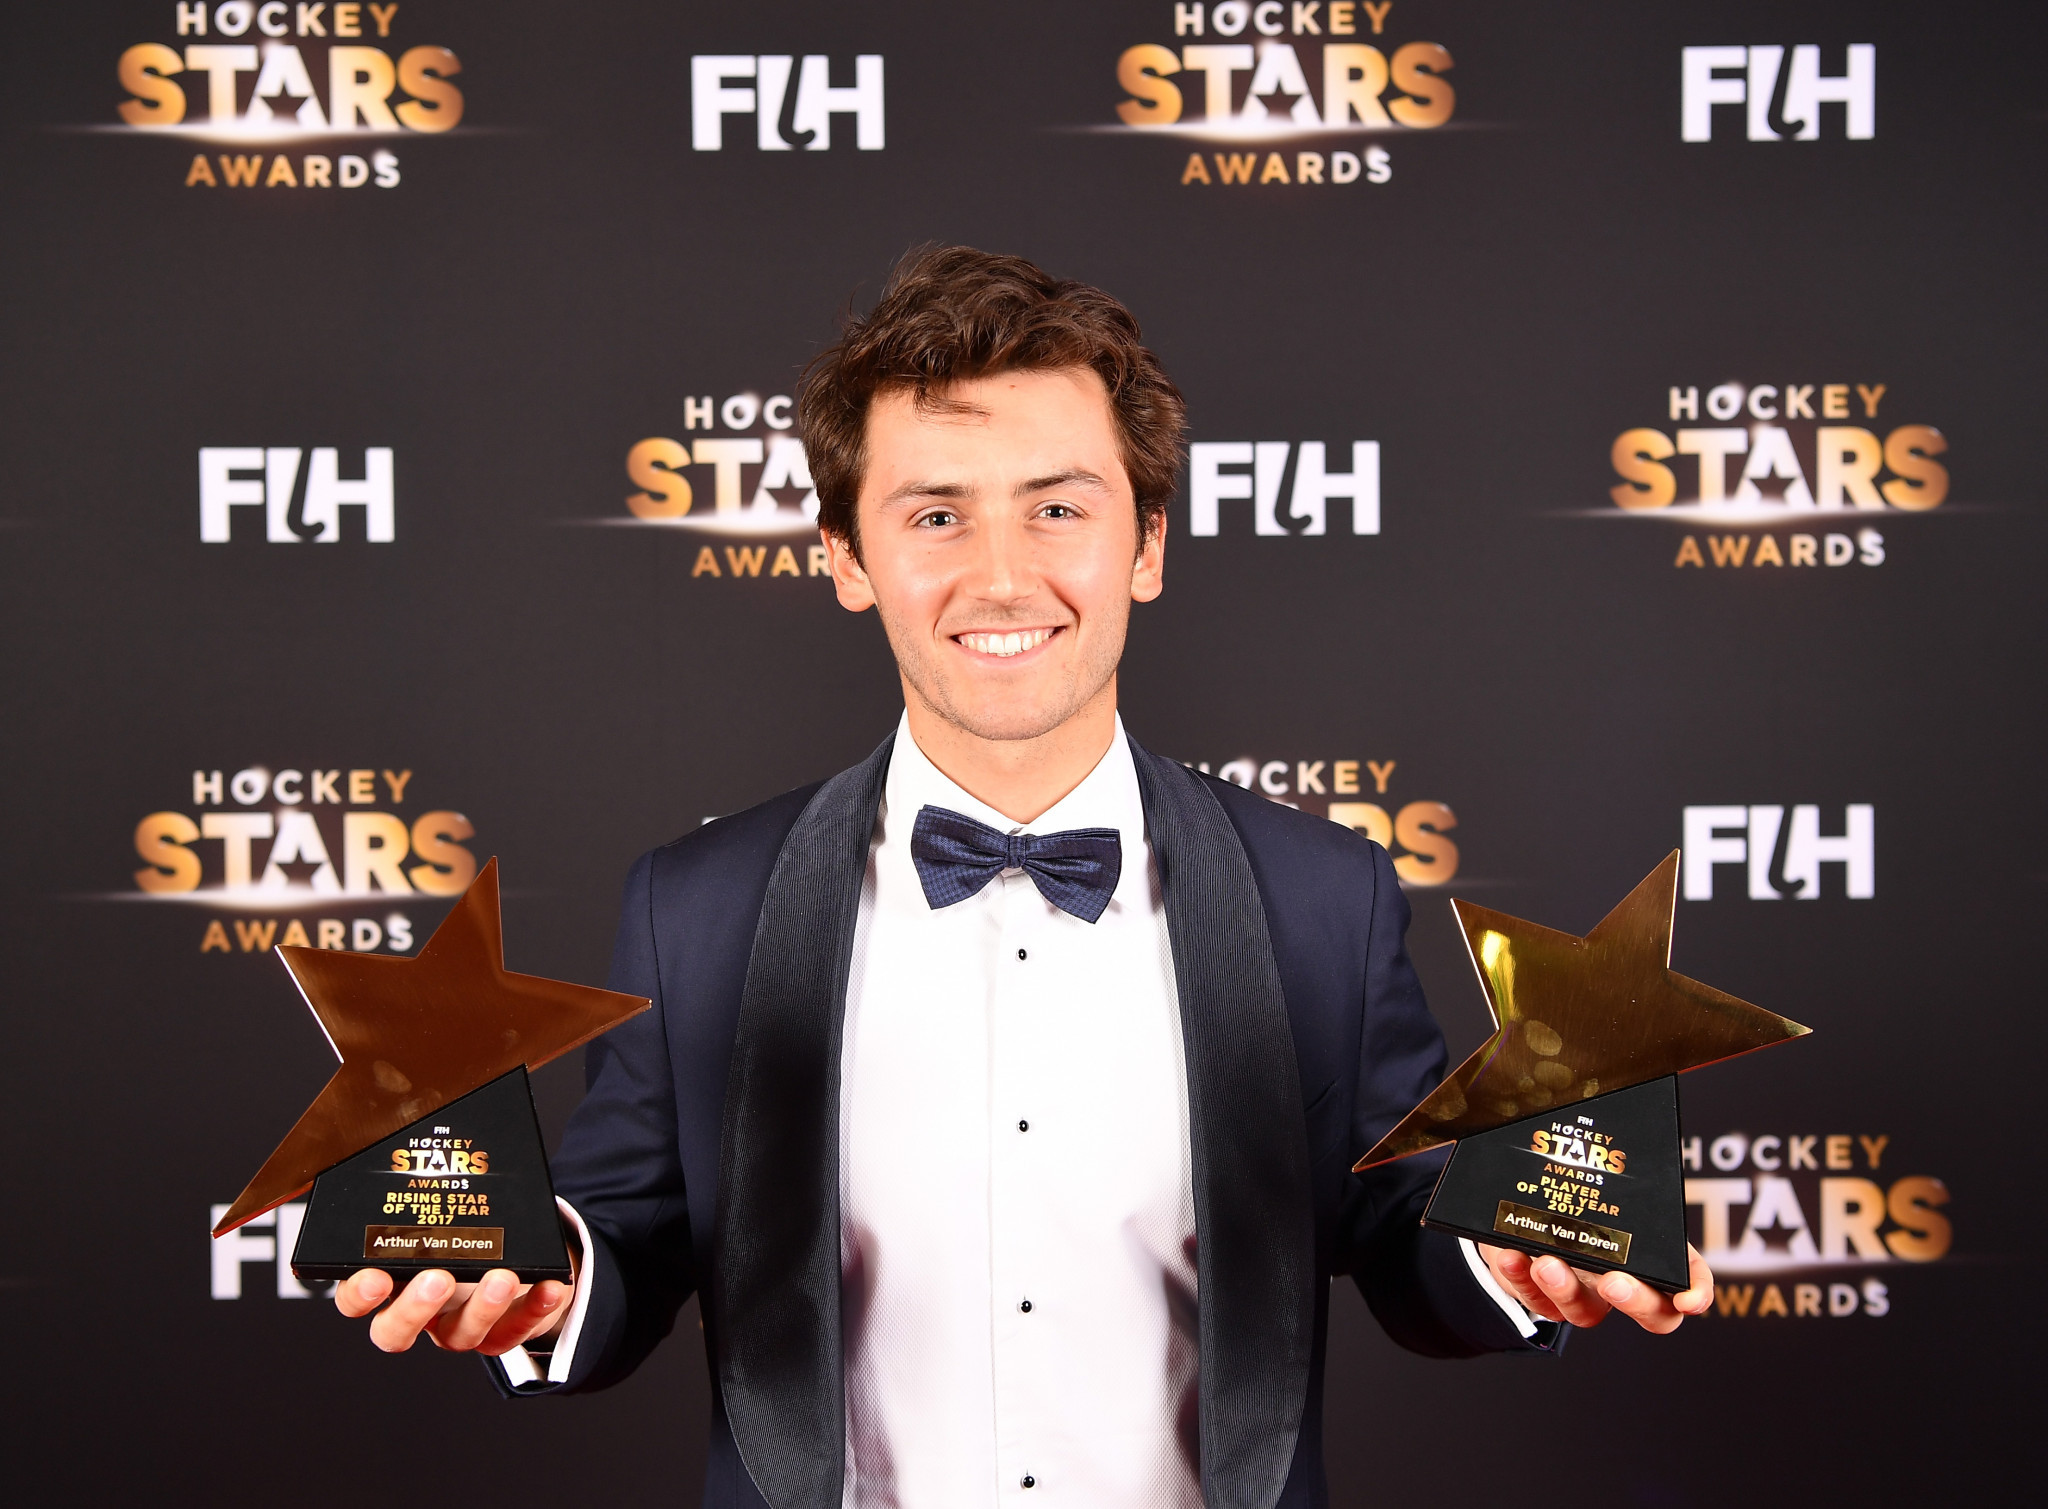 Van Doren scoops two prizes at FIH Hockey Stars Awards